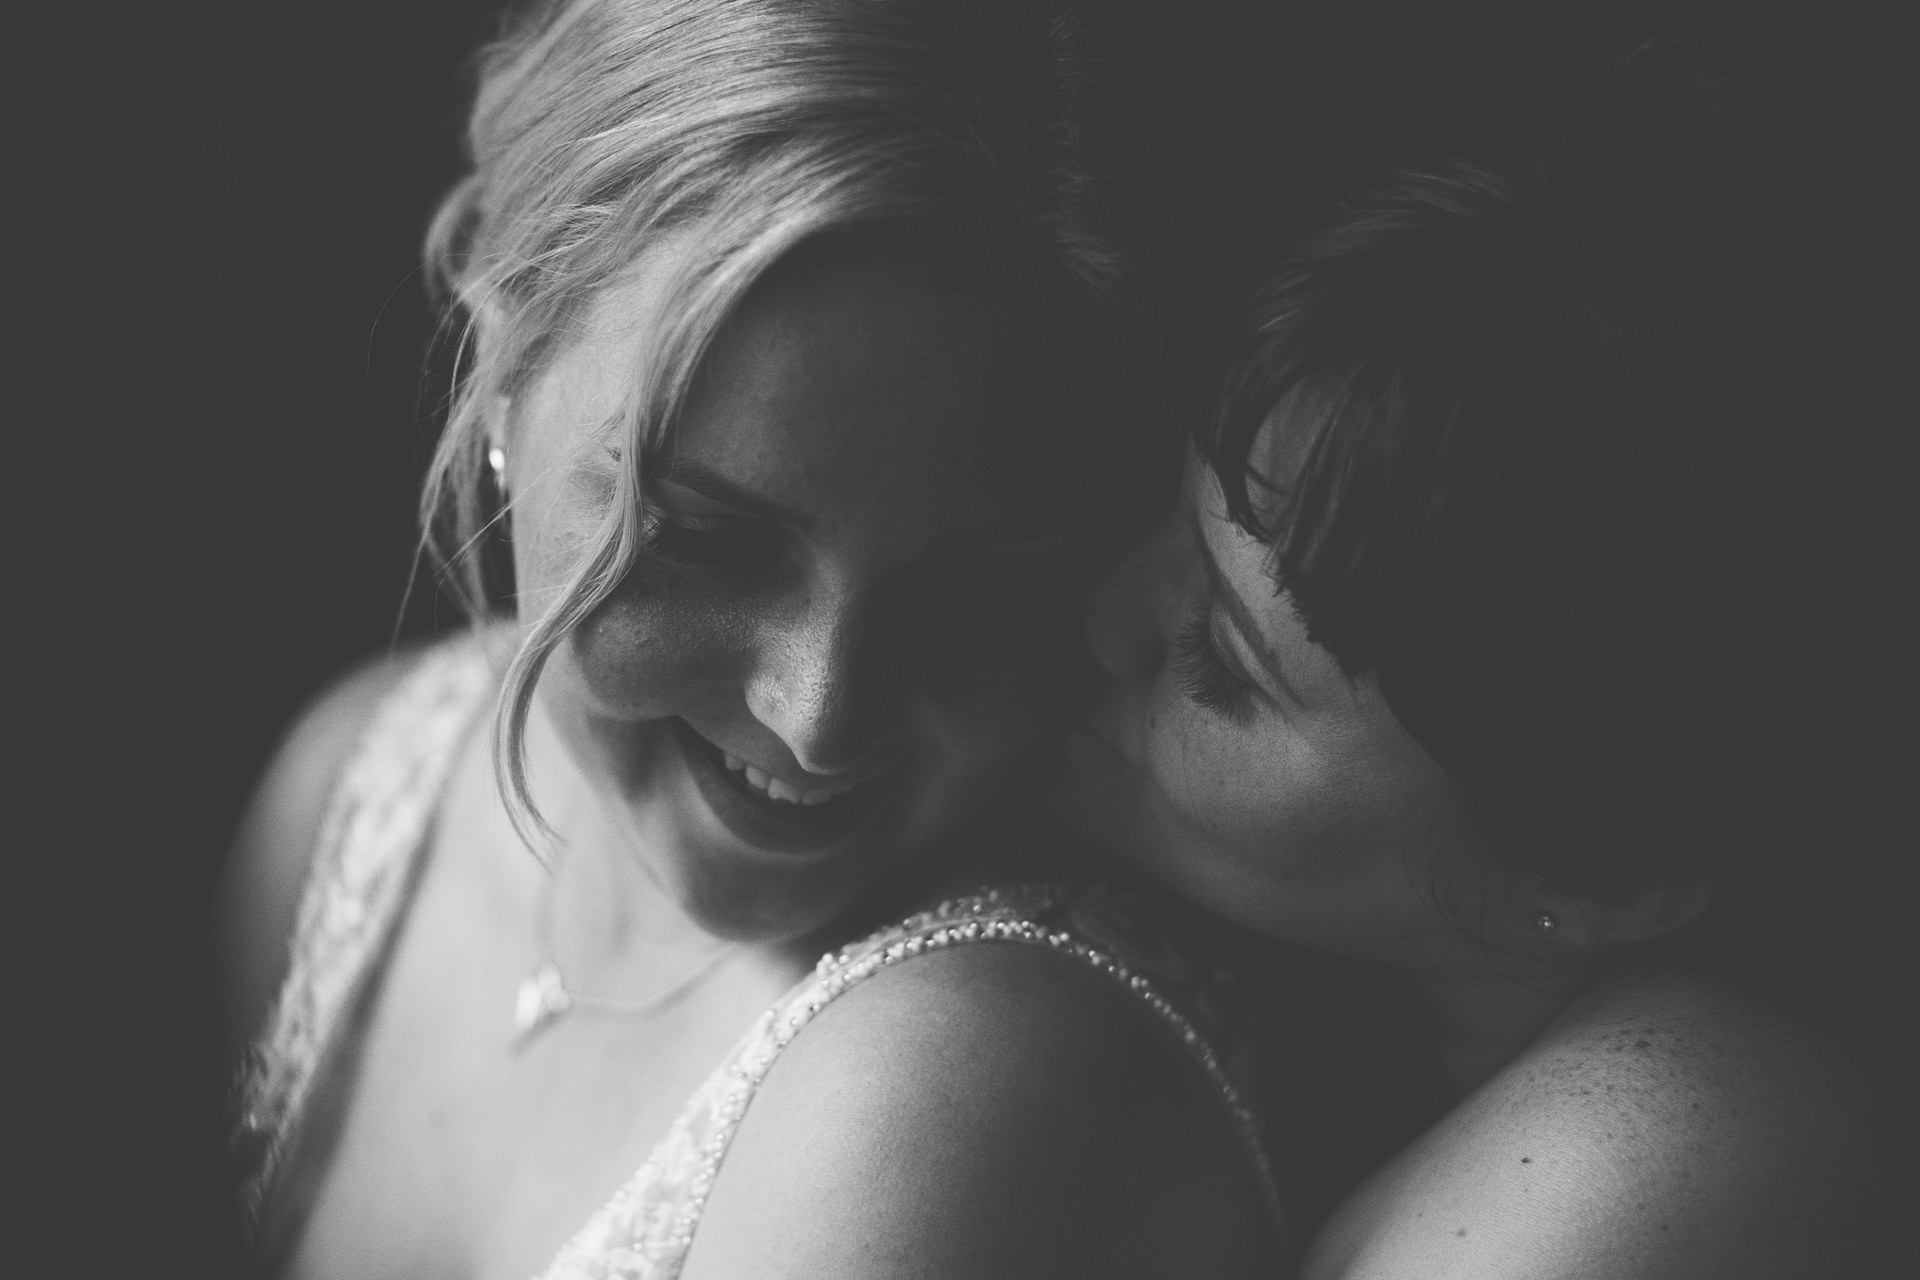 Best wedding photography 2016 - brides embracing at portrait time